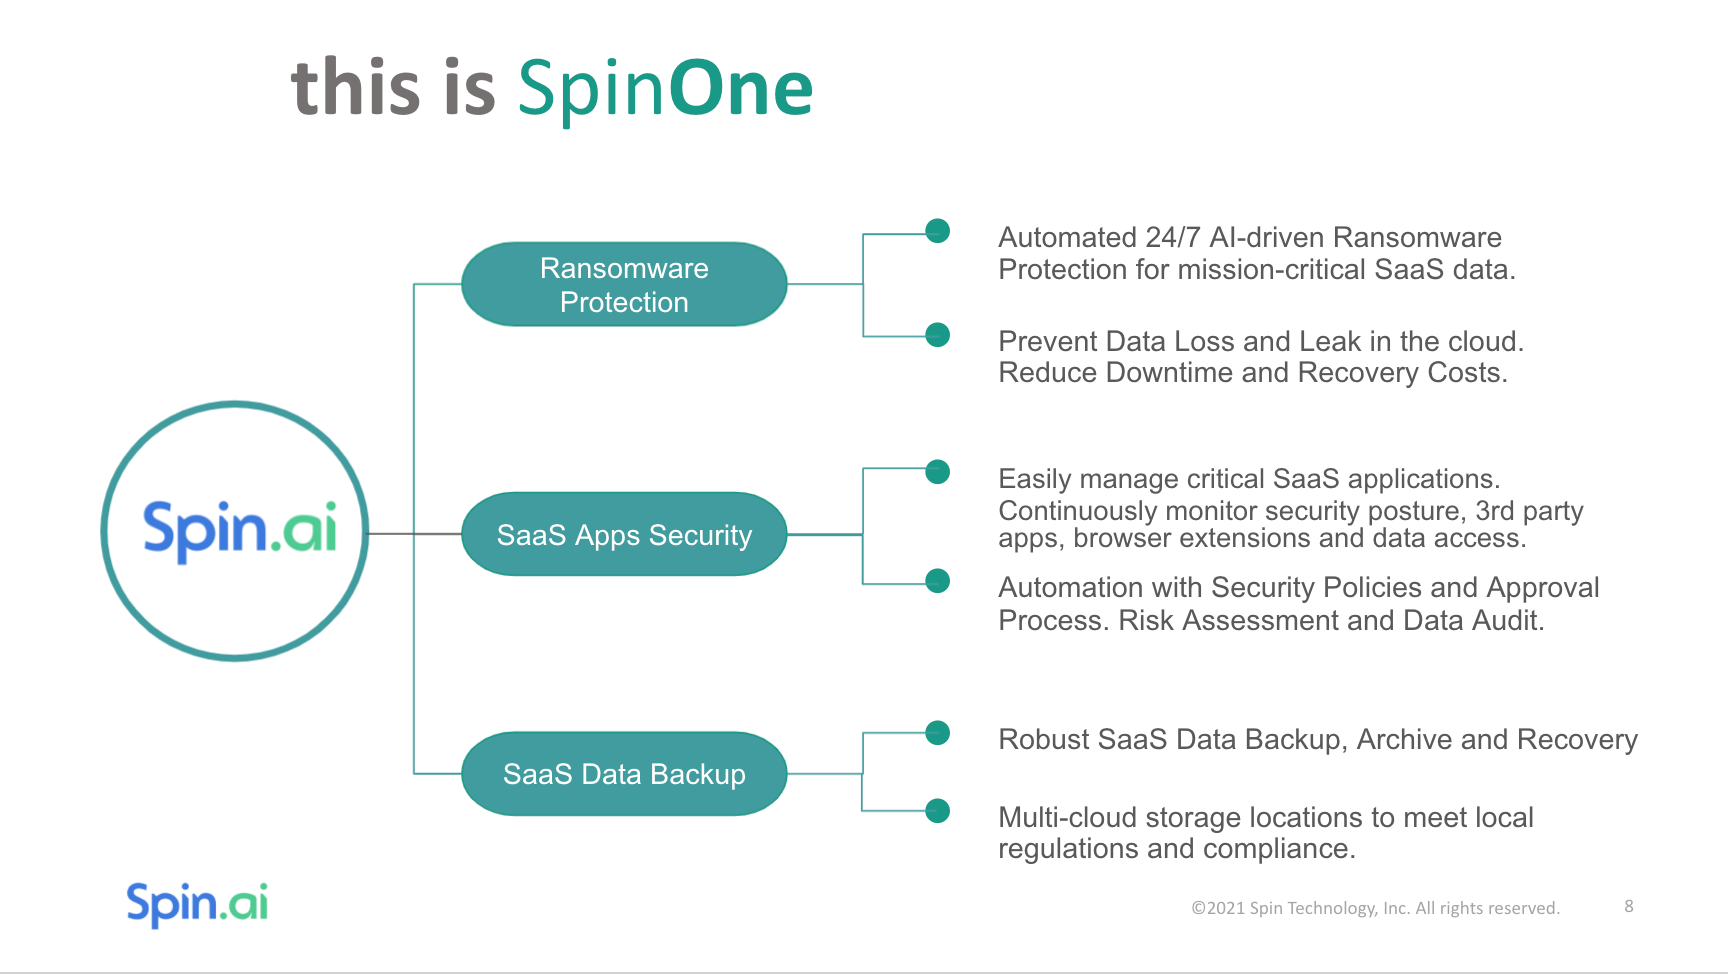 SpinOne – Centralized and Automated Cloud SaaS Security Platform